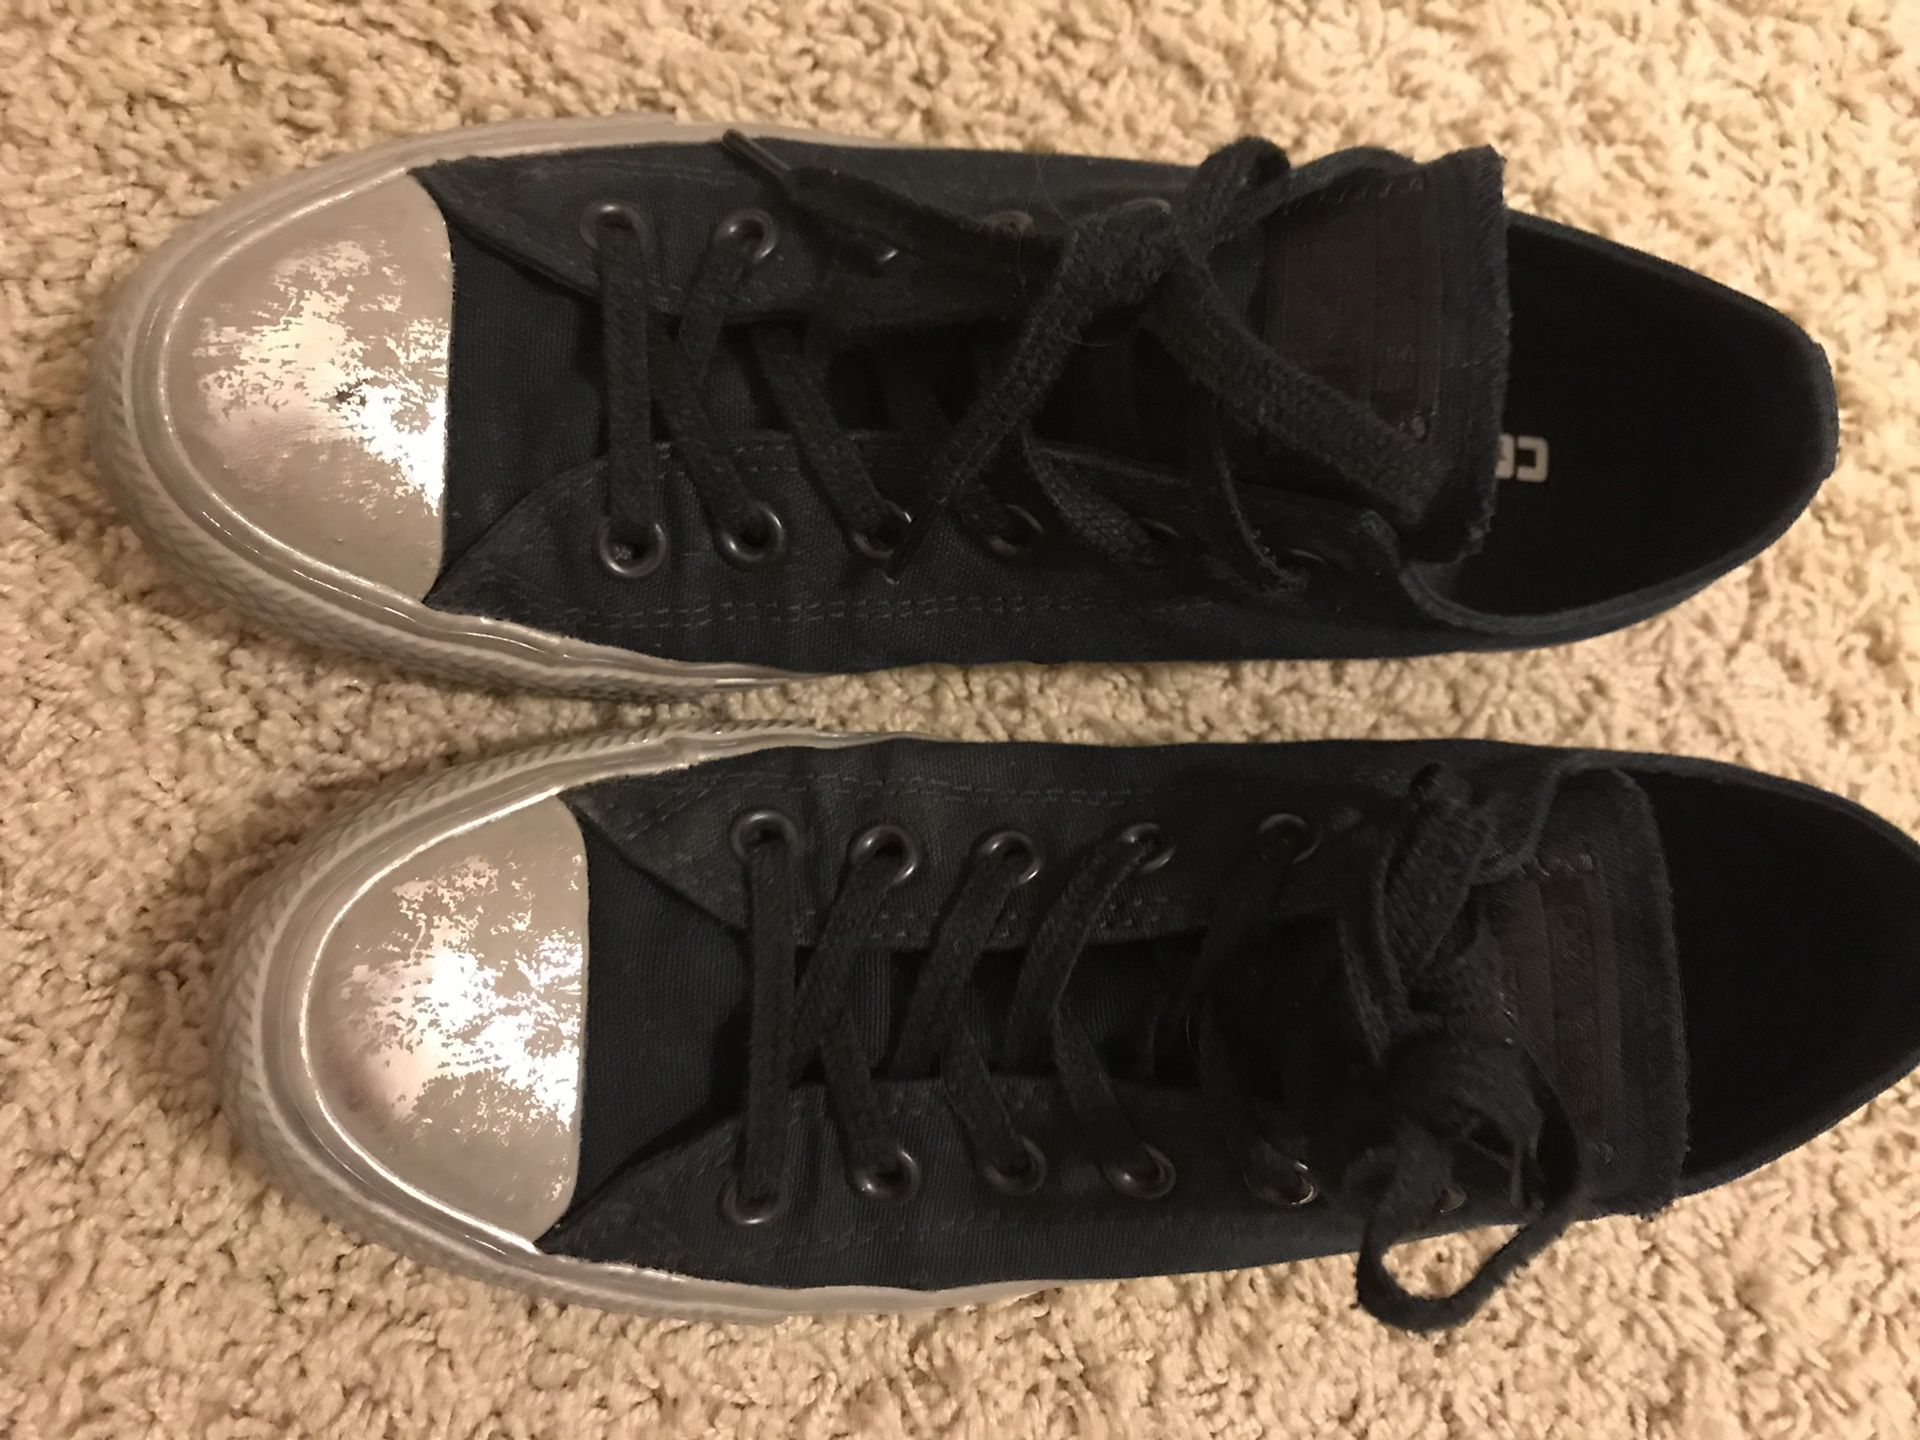 Black Converse with silver rubber